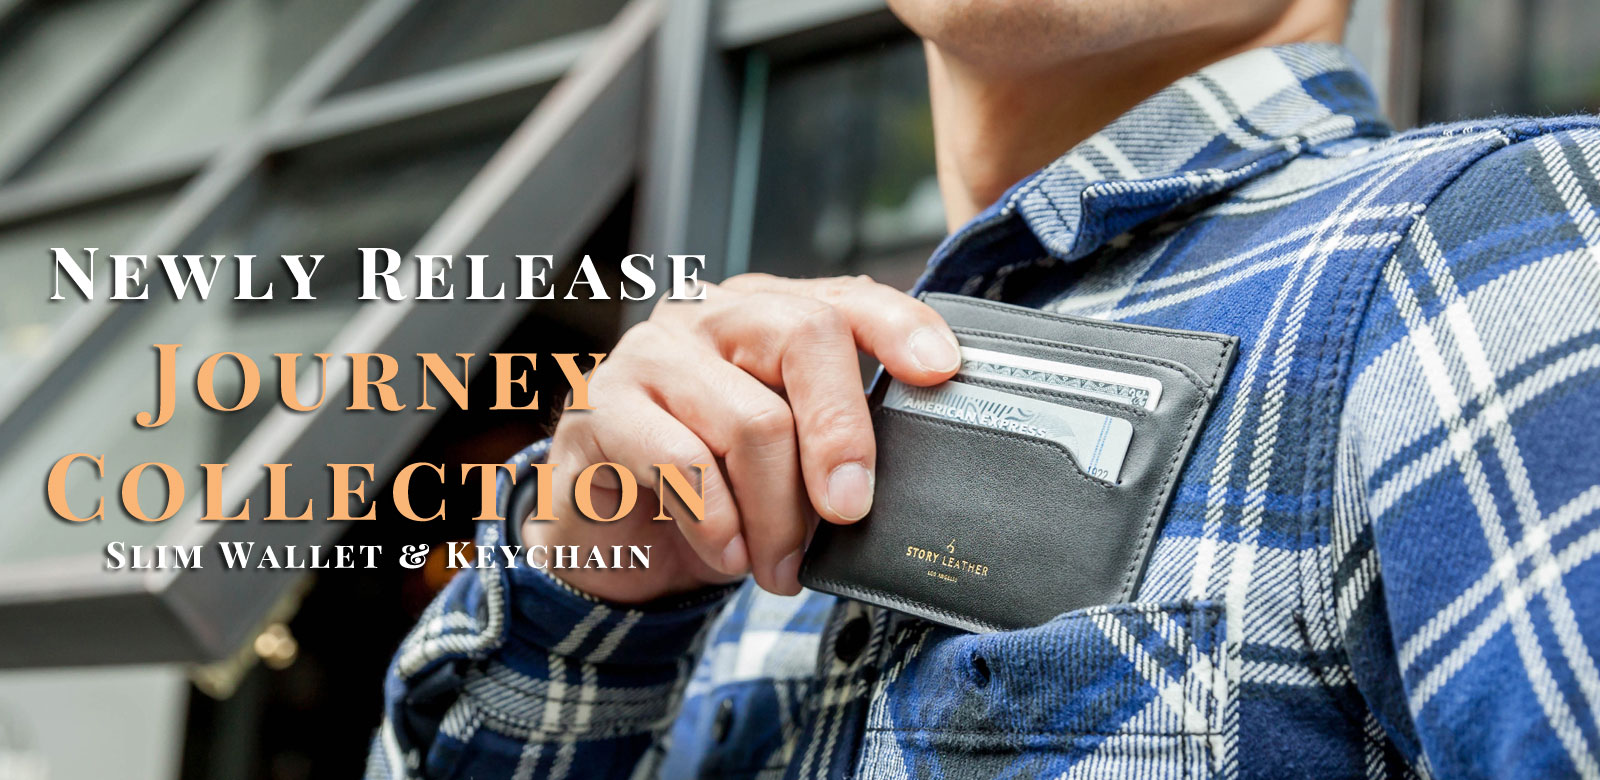 Journey Collection Now Available for Immediate Shipment - Slim Wallets & Keychains